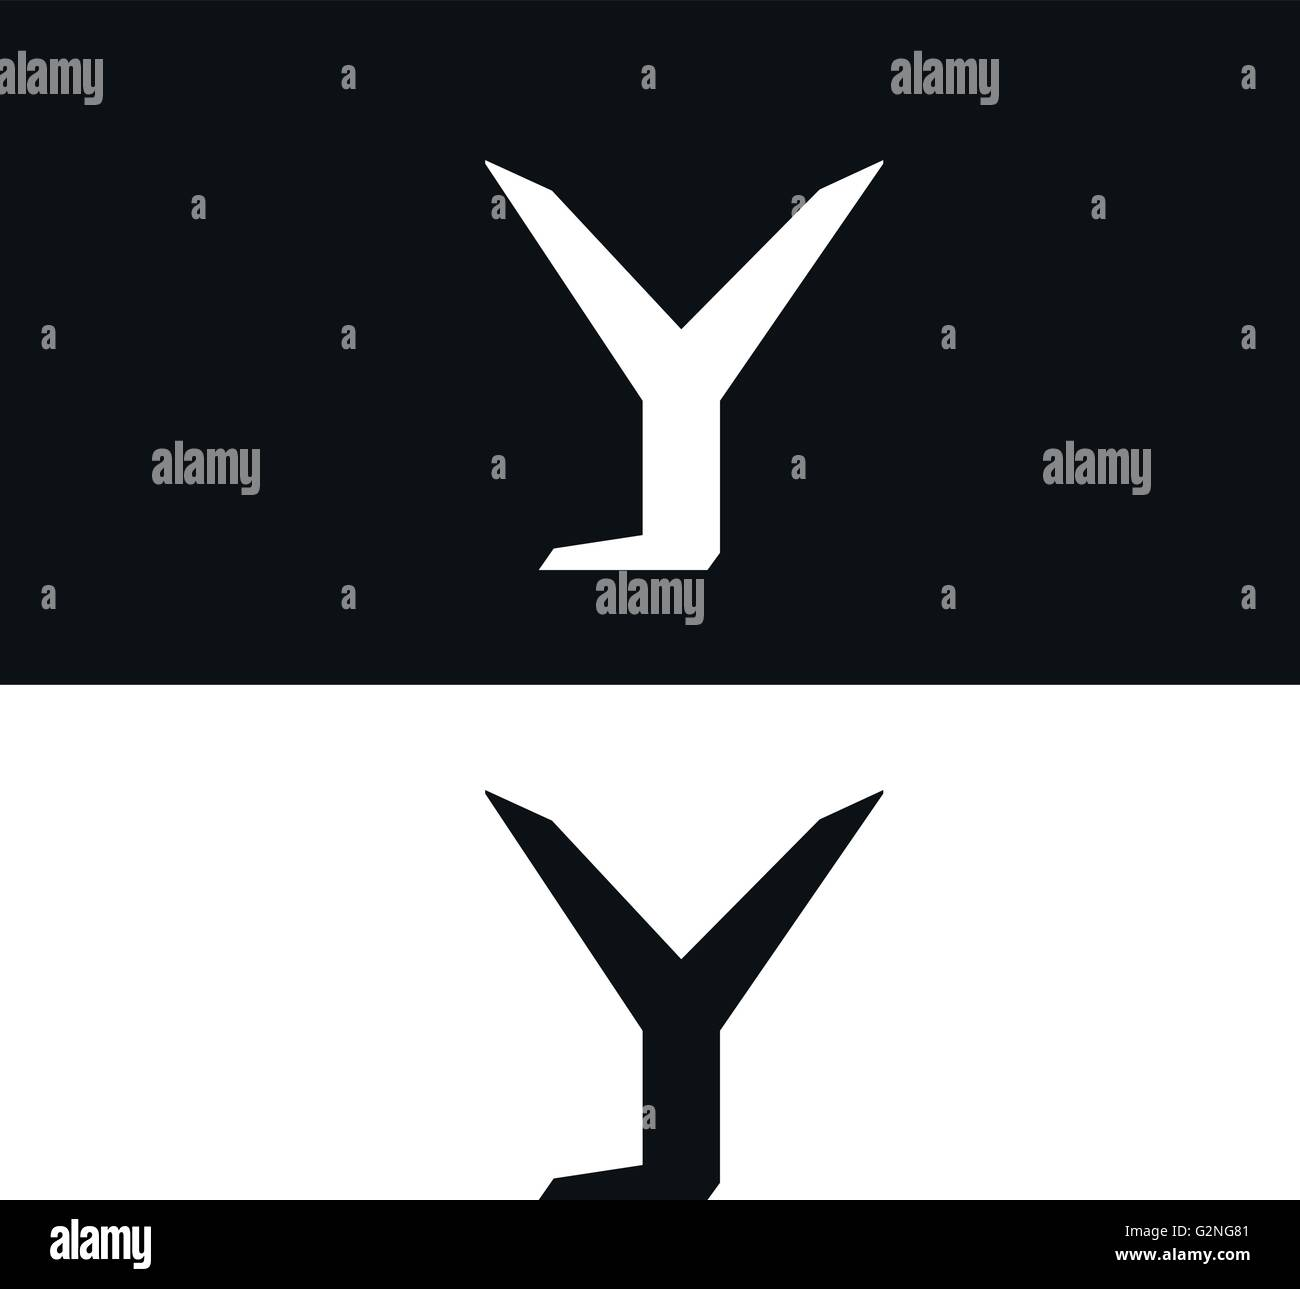 vector letter y logo icon design template black and white version